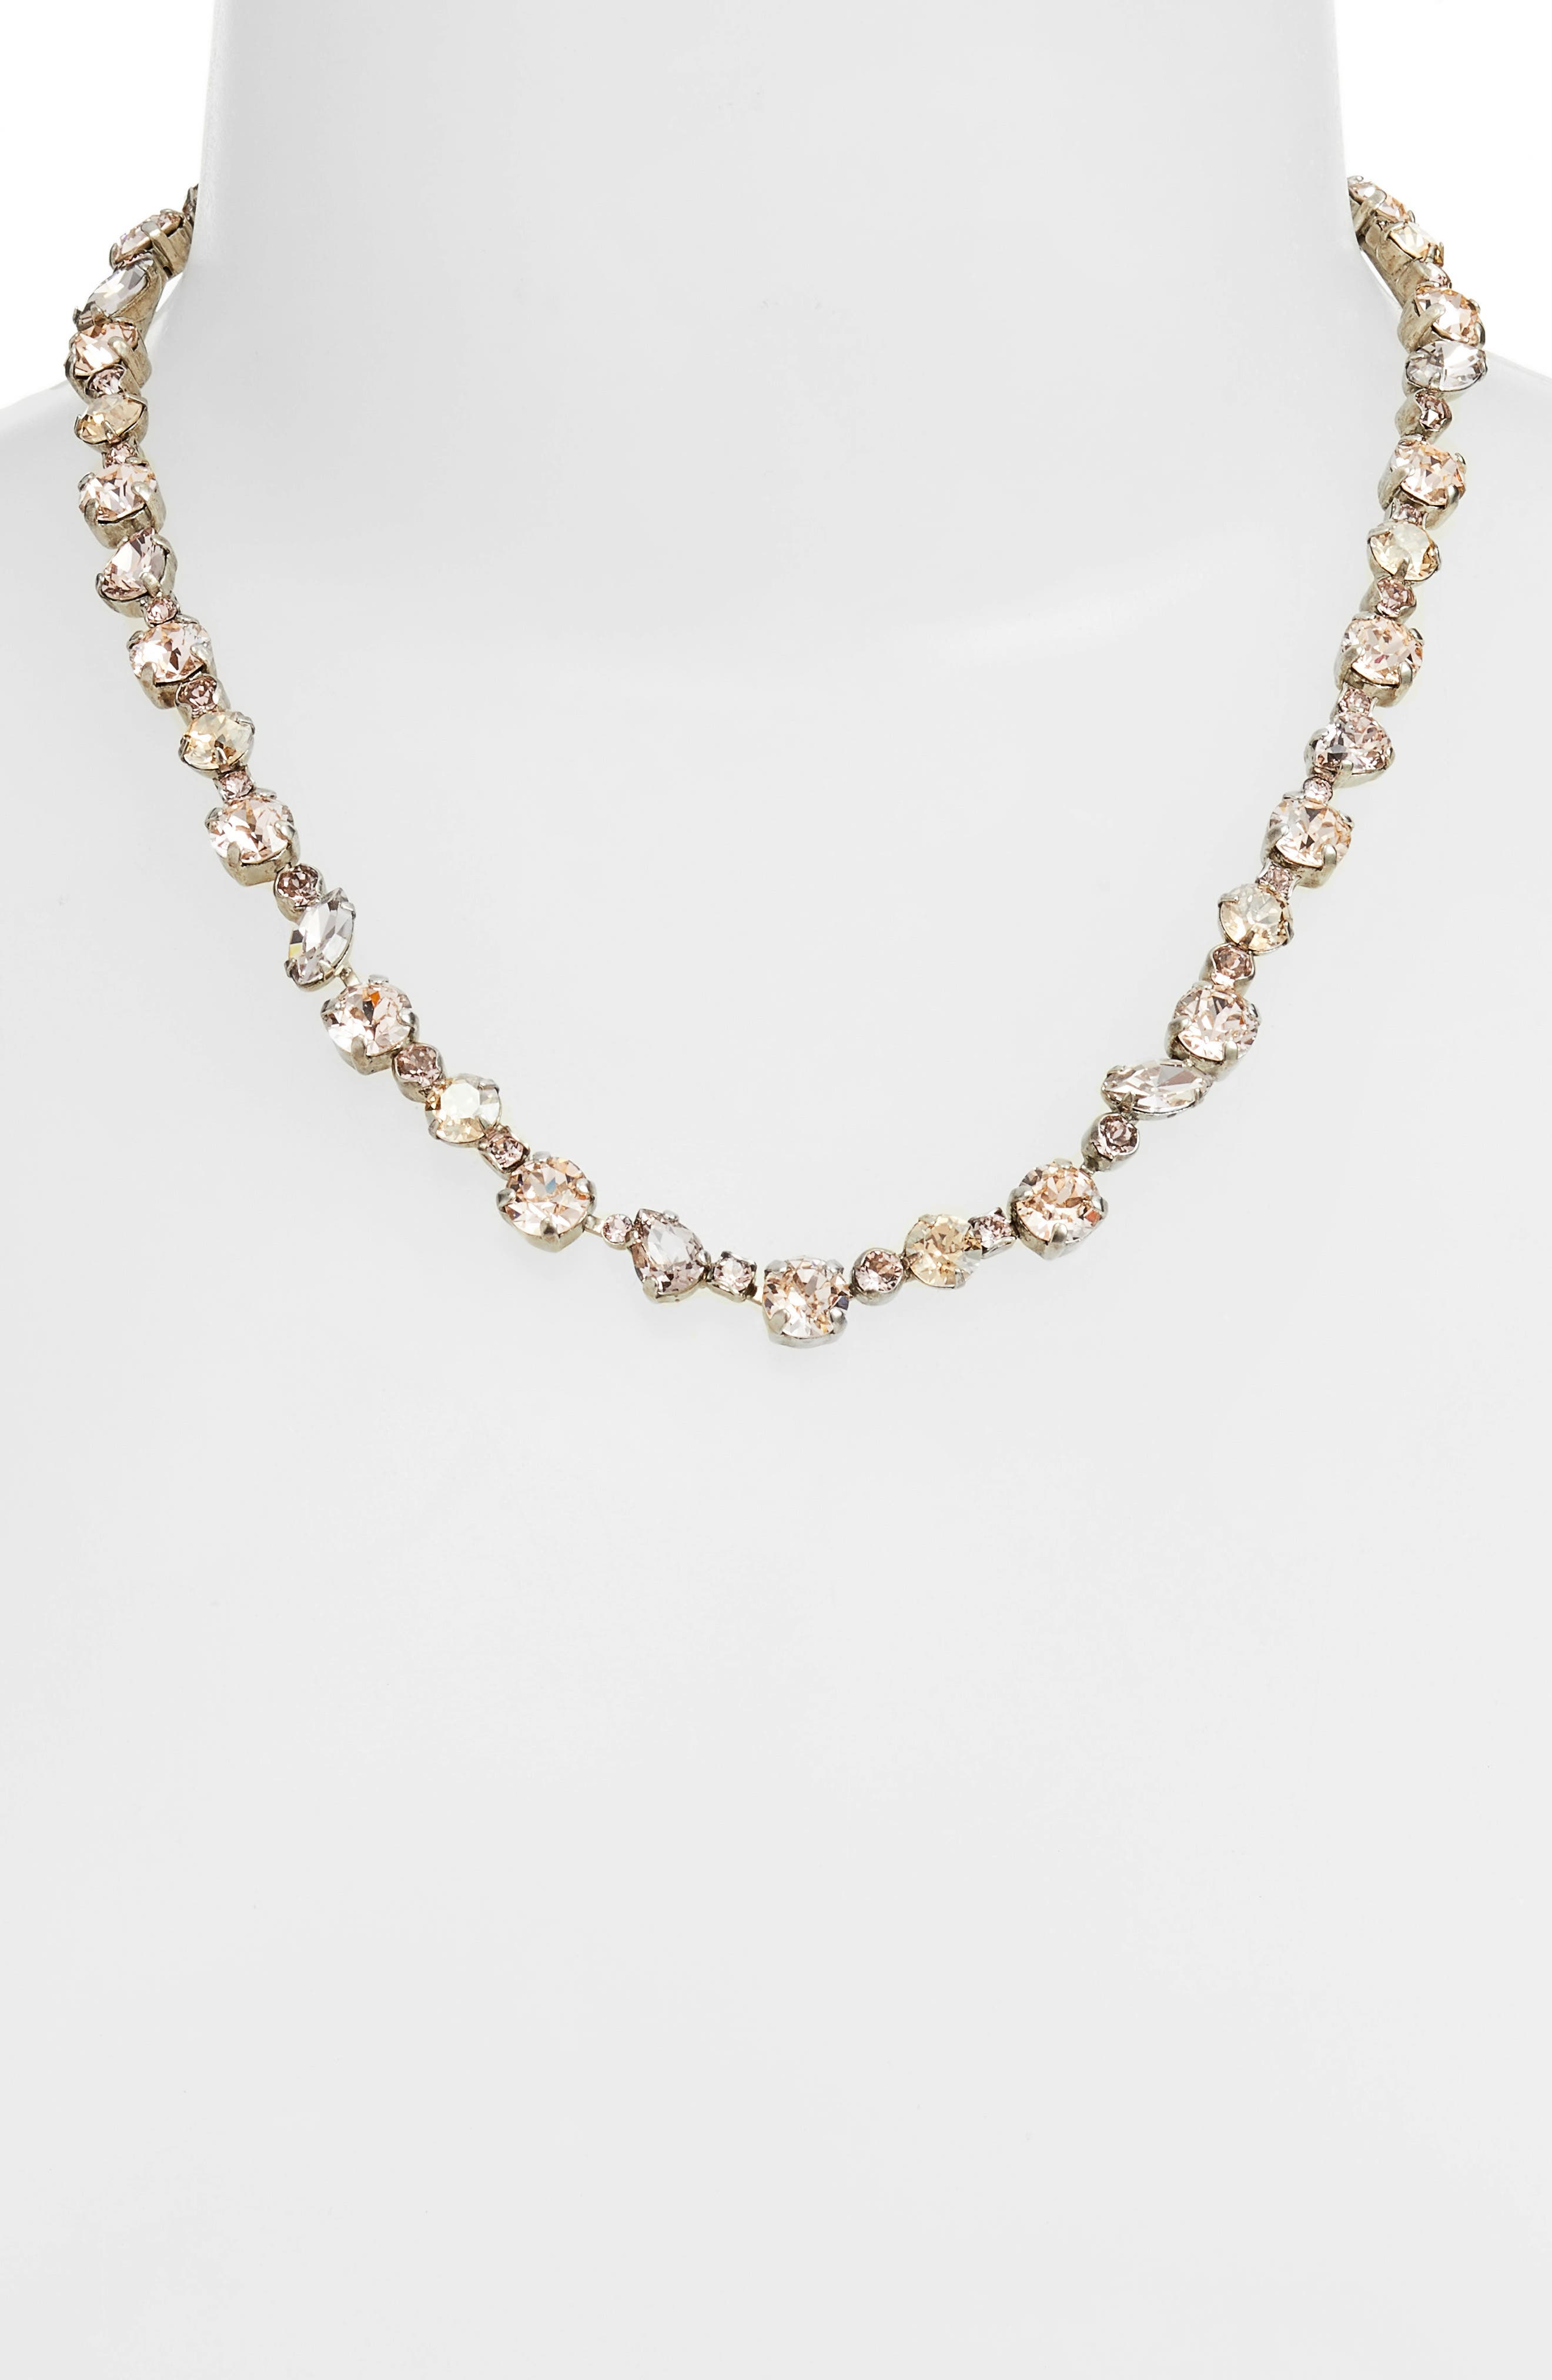 Crystal Collective Necklace,                             Alternate thumbnail 2, color,                             650